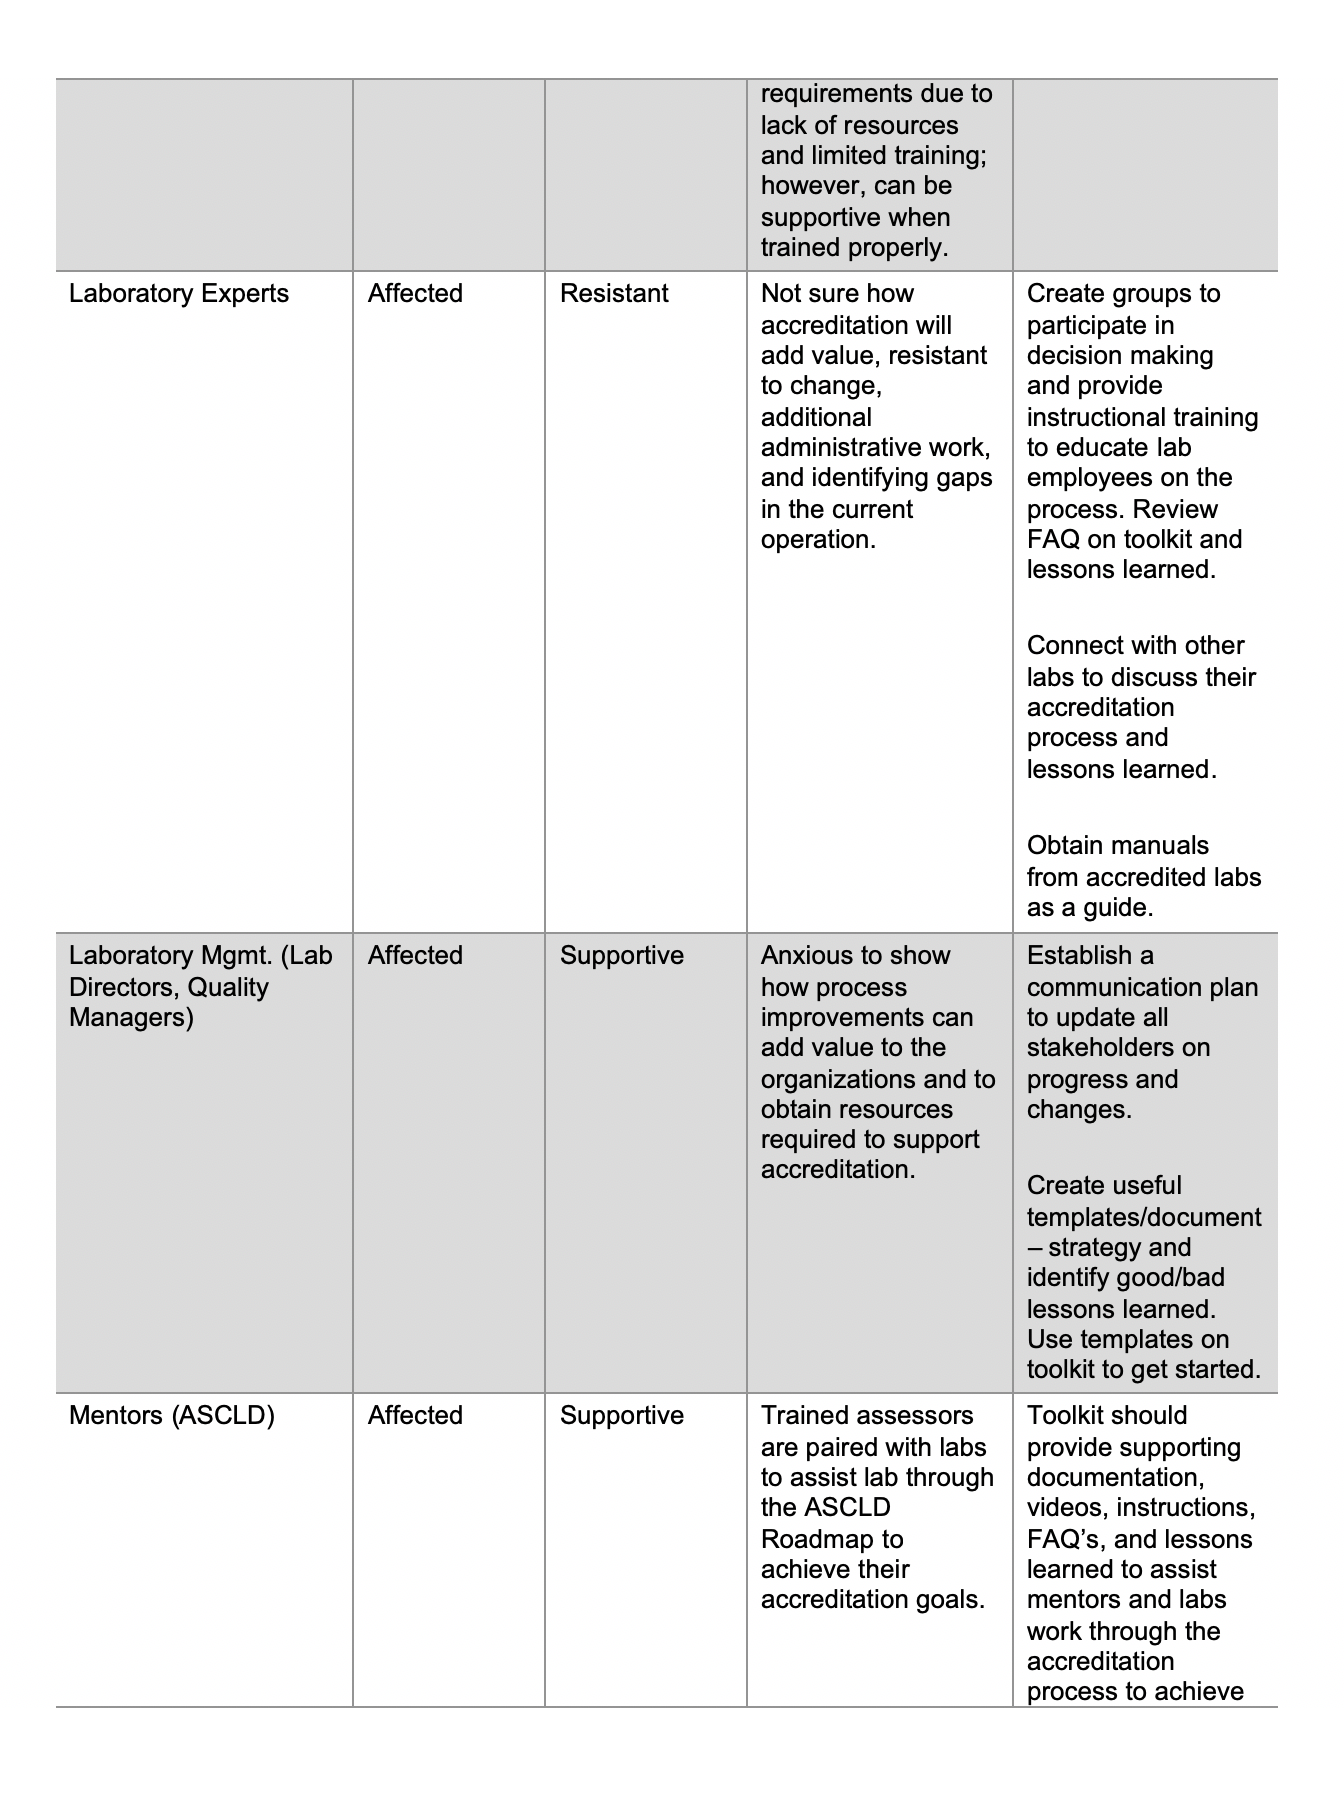 Stakeholders Table Image